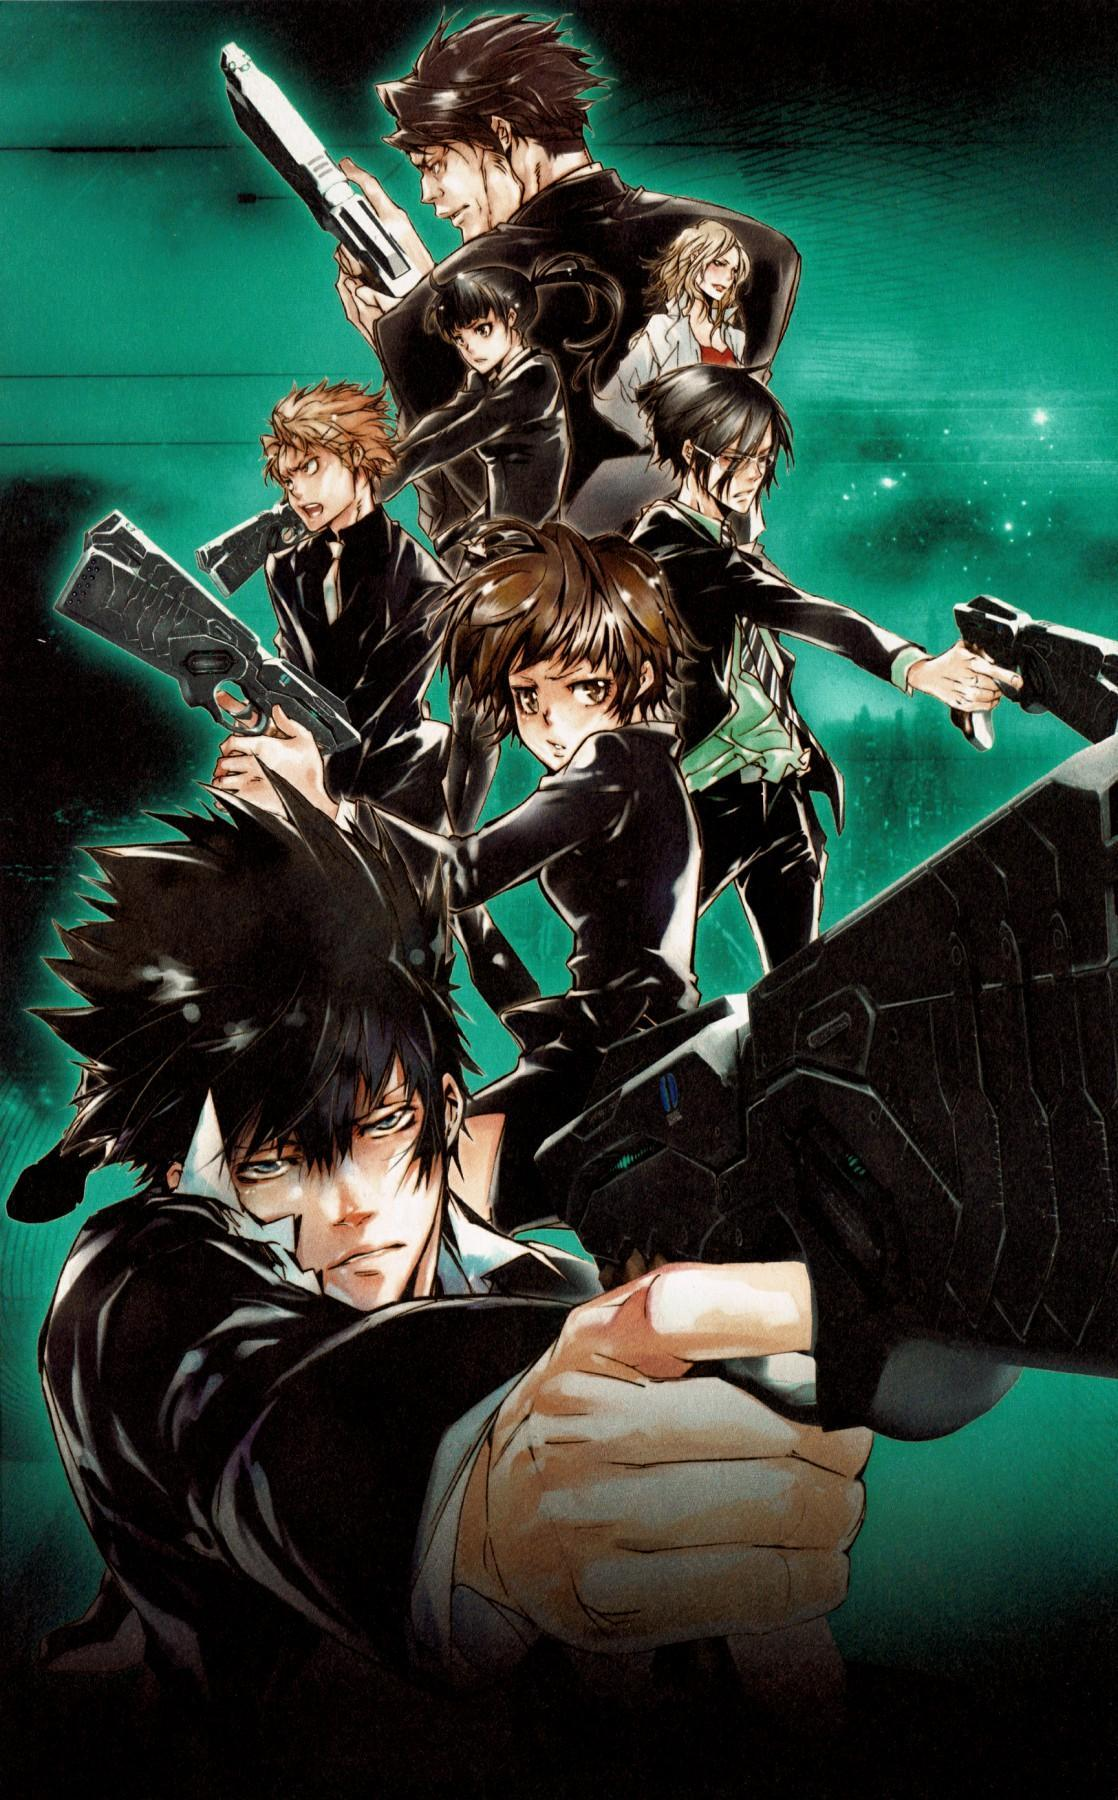 Psycho Pass Wallpaper Anime For Android Apk Download